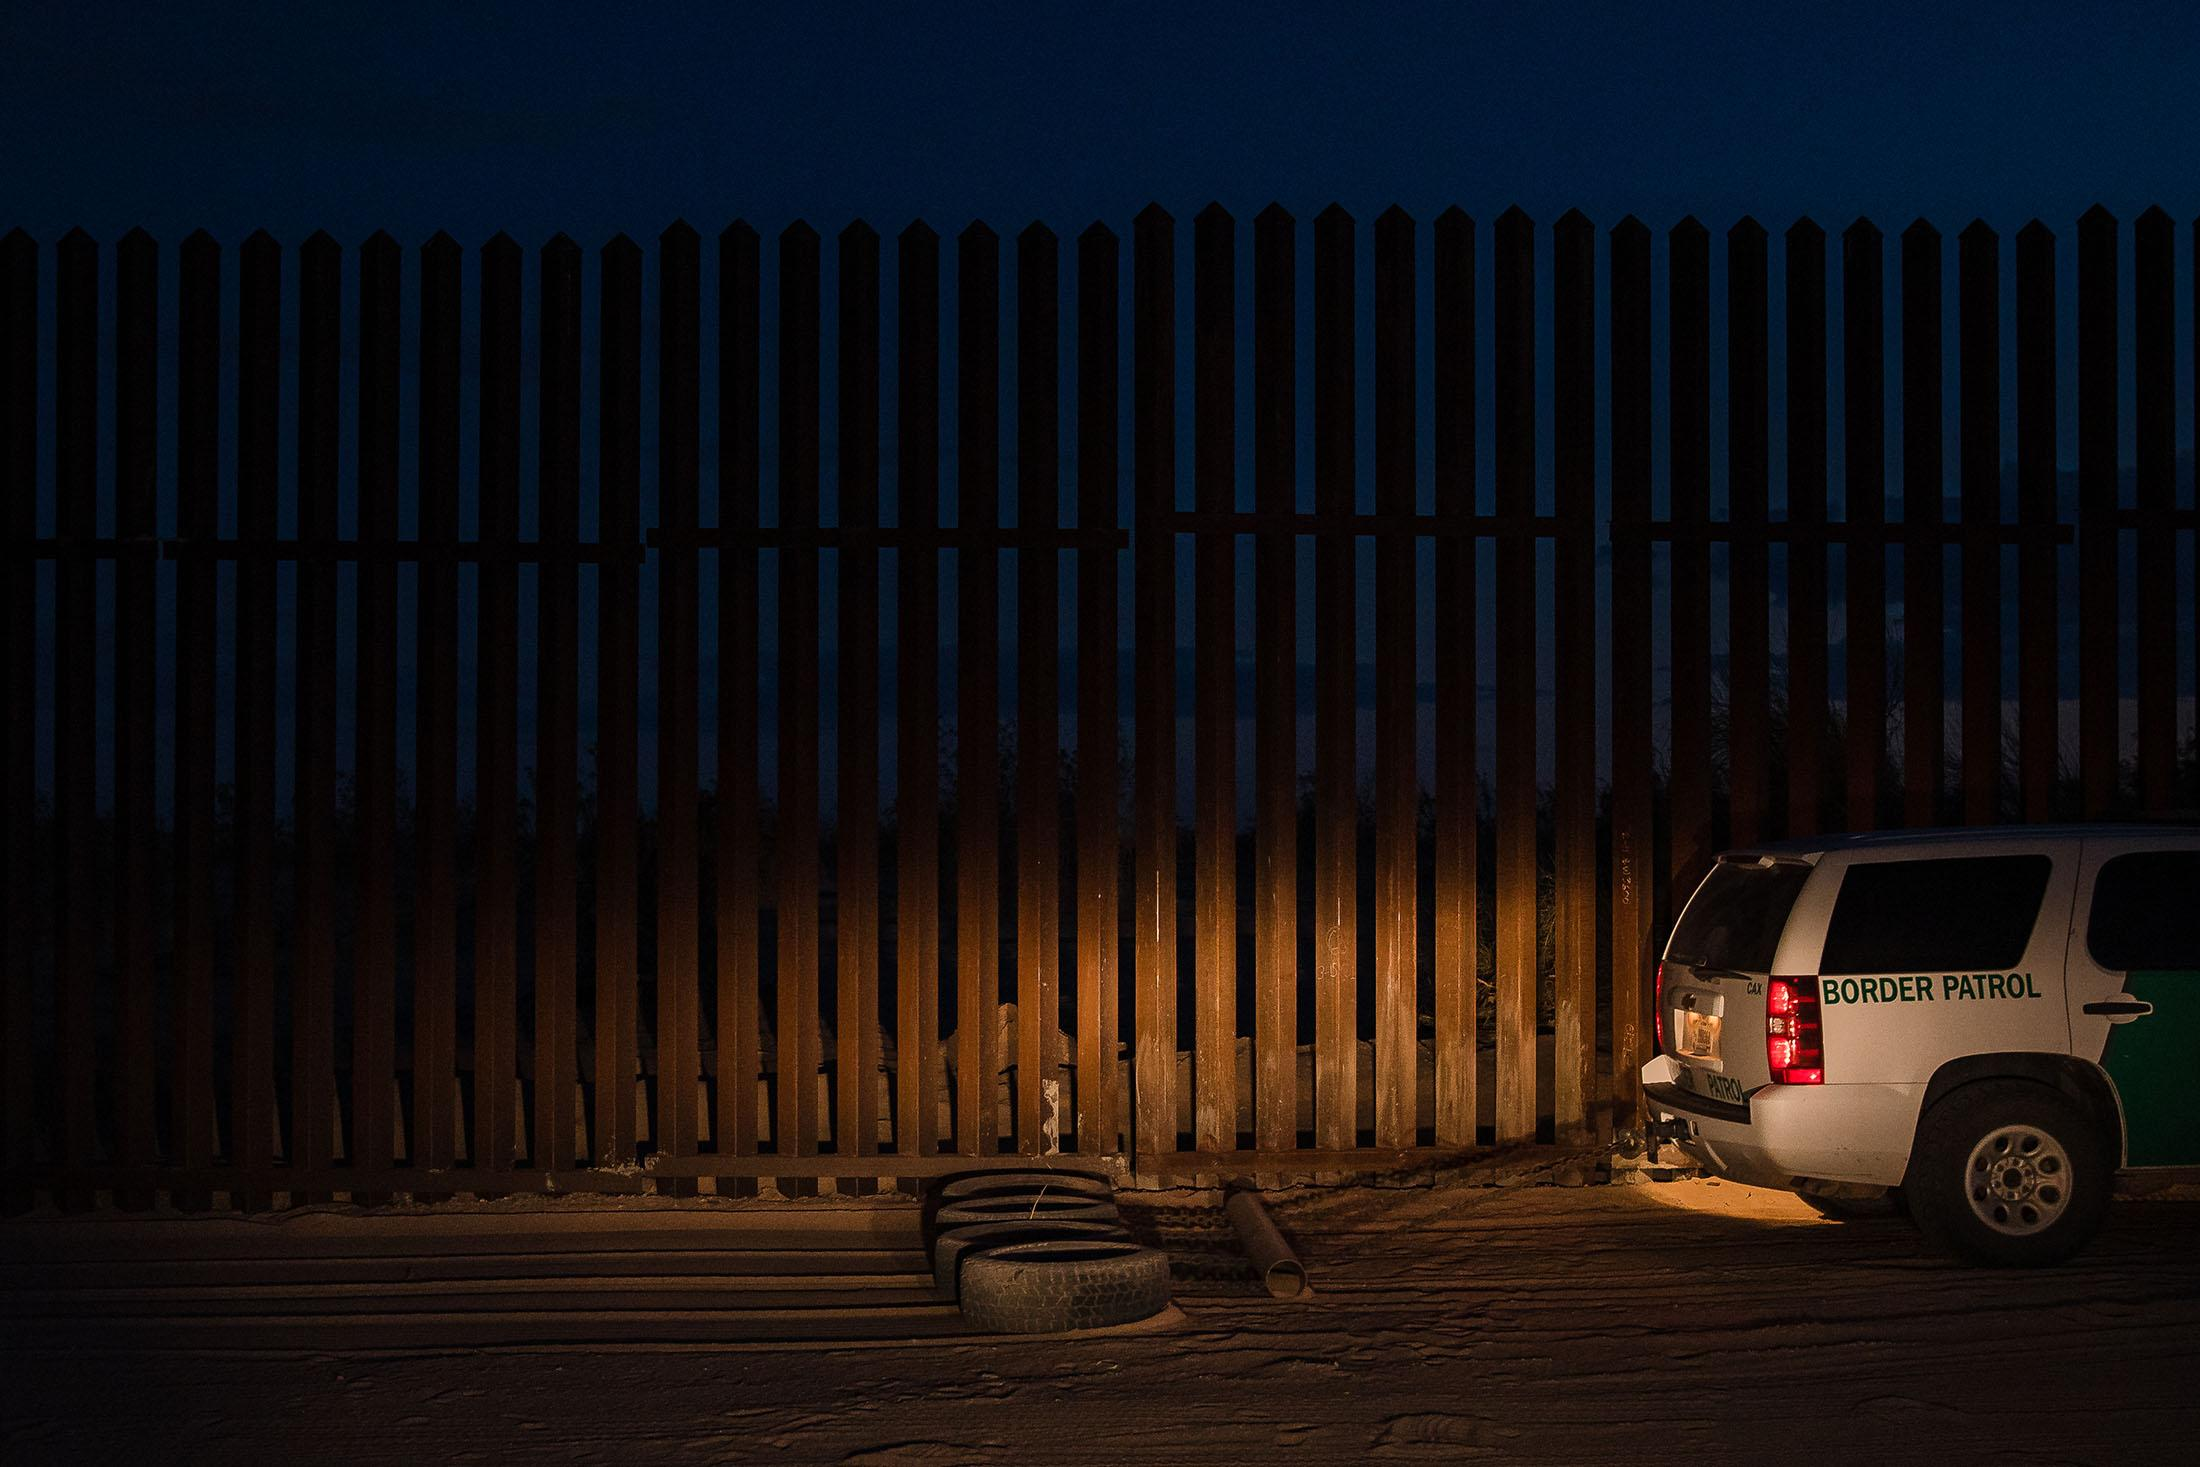 A Border Patrol agent drags tires behind his vehicle to smooth out the ground in front of the border wall, making it easier to recognize new footprints from migrants coming into the United States illegally in front of the section of the now repaired border wall that was breached in early March near the Gordon's Well exit just off Interstate 8.